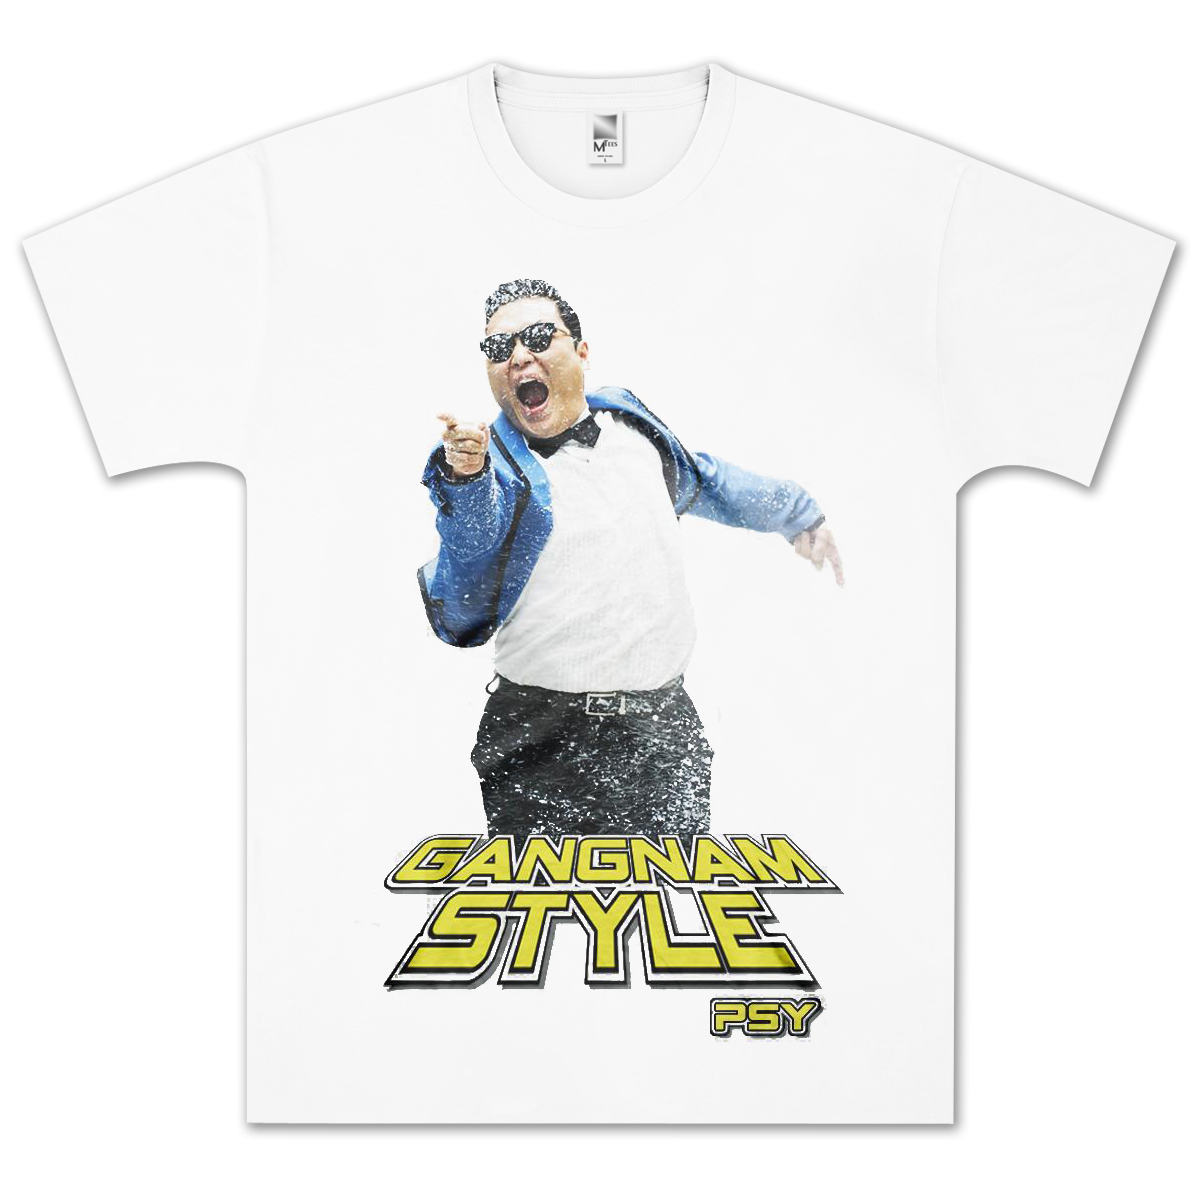 PSY Snow Point T-Shirt